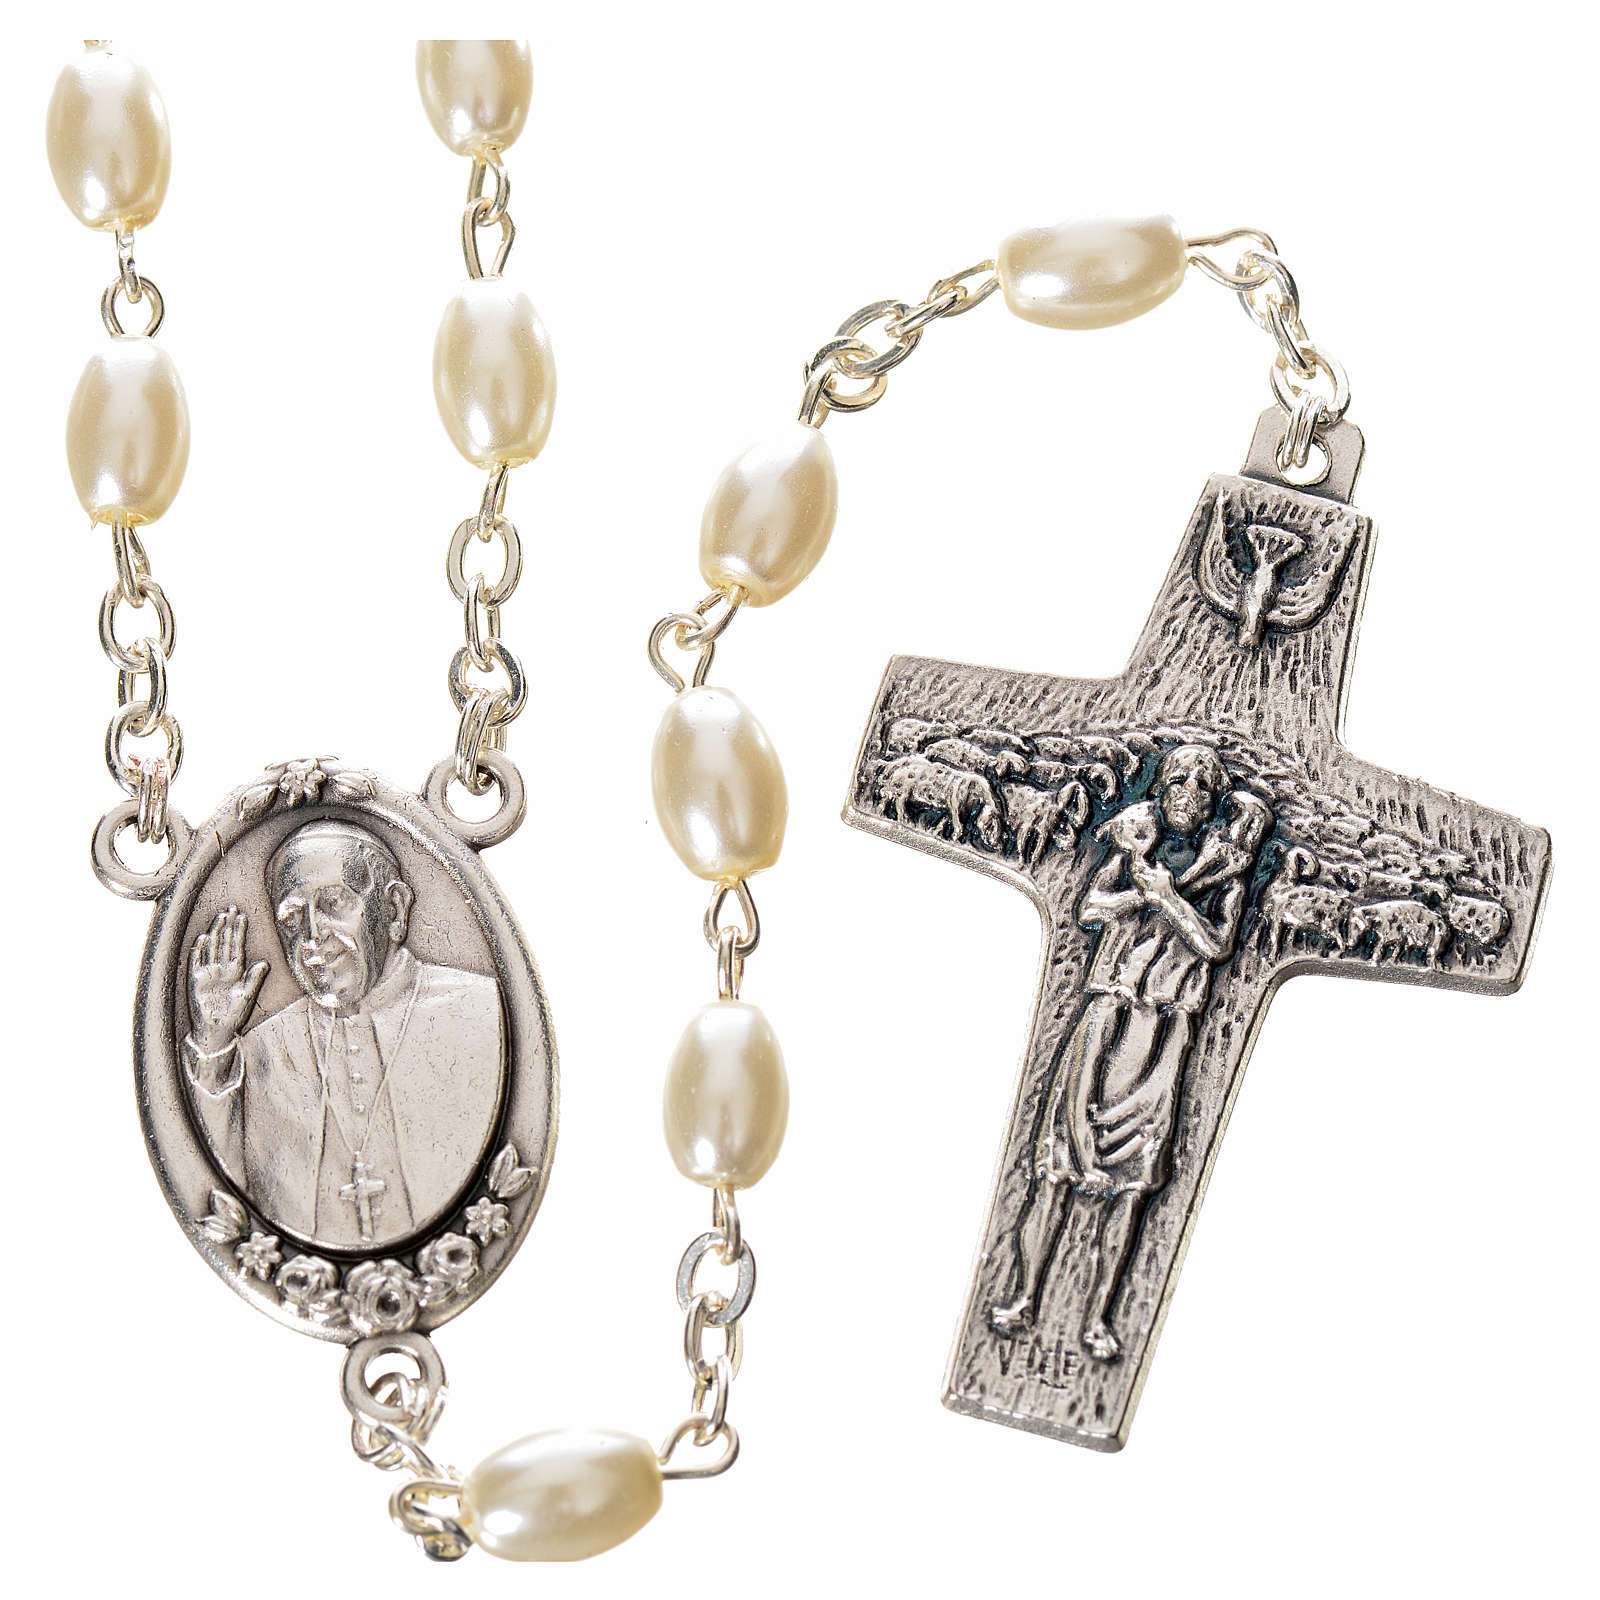 Imitation pearl rosary, Pope Francis, oval grains 4